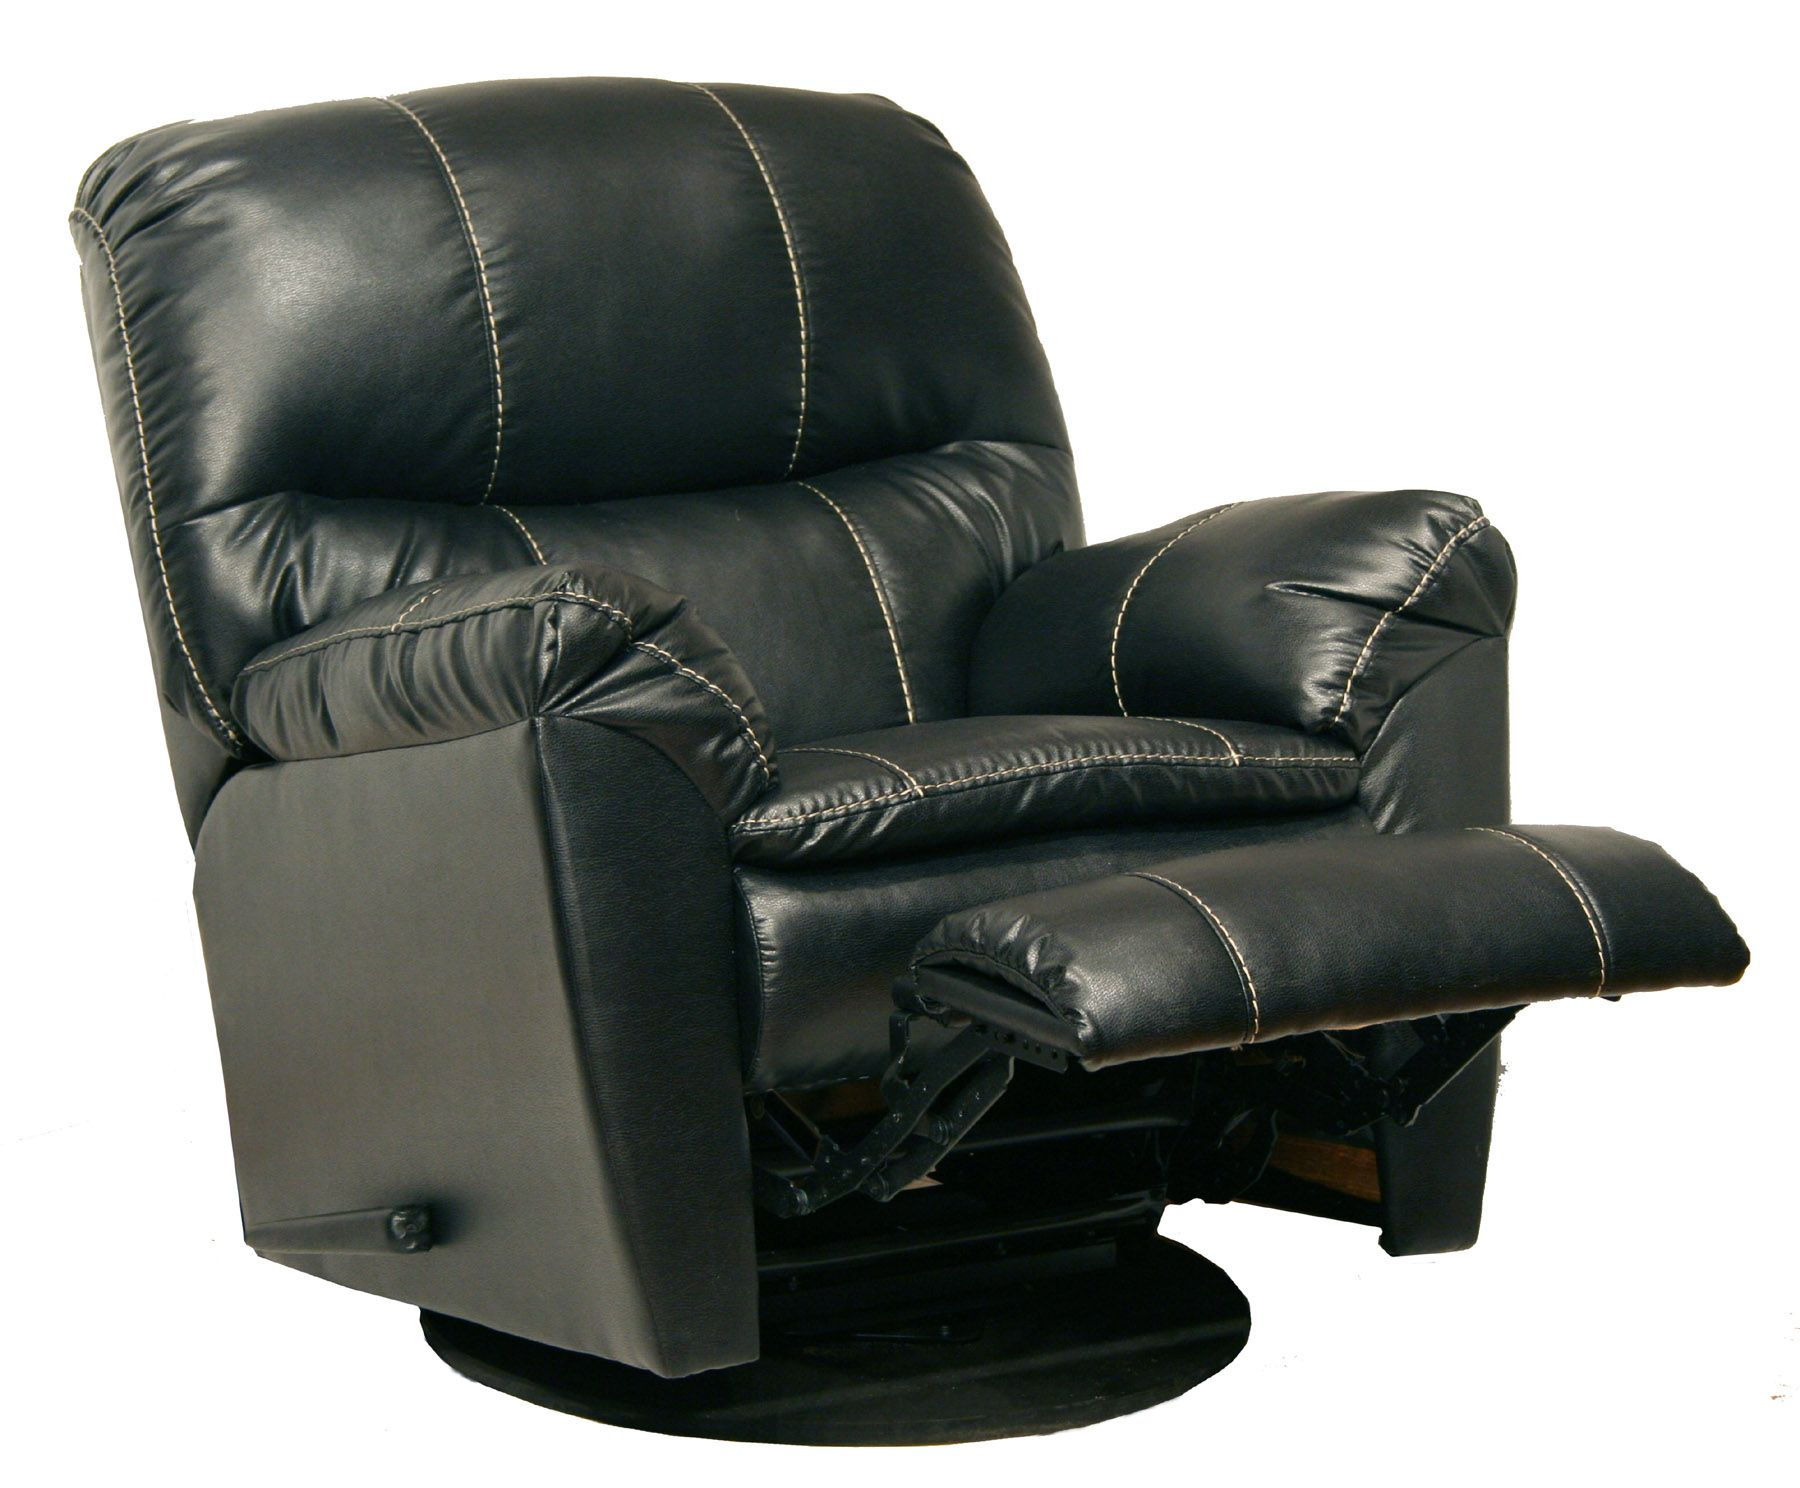 Leather Swivel Recliner Chairs Catnapper Cosmo Quot Bonded Quot Leather Swivel Glider Recliner